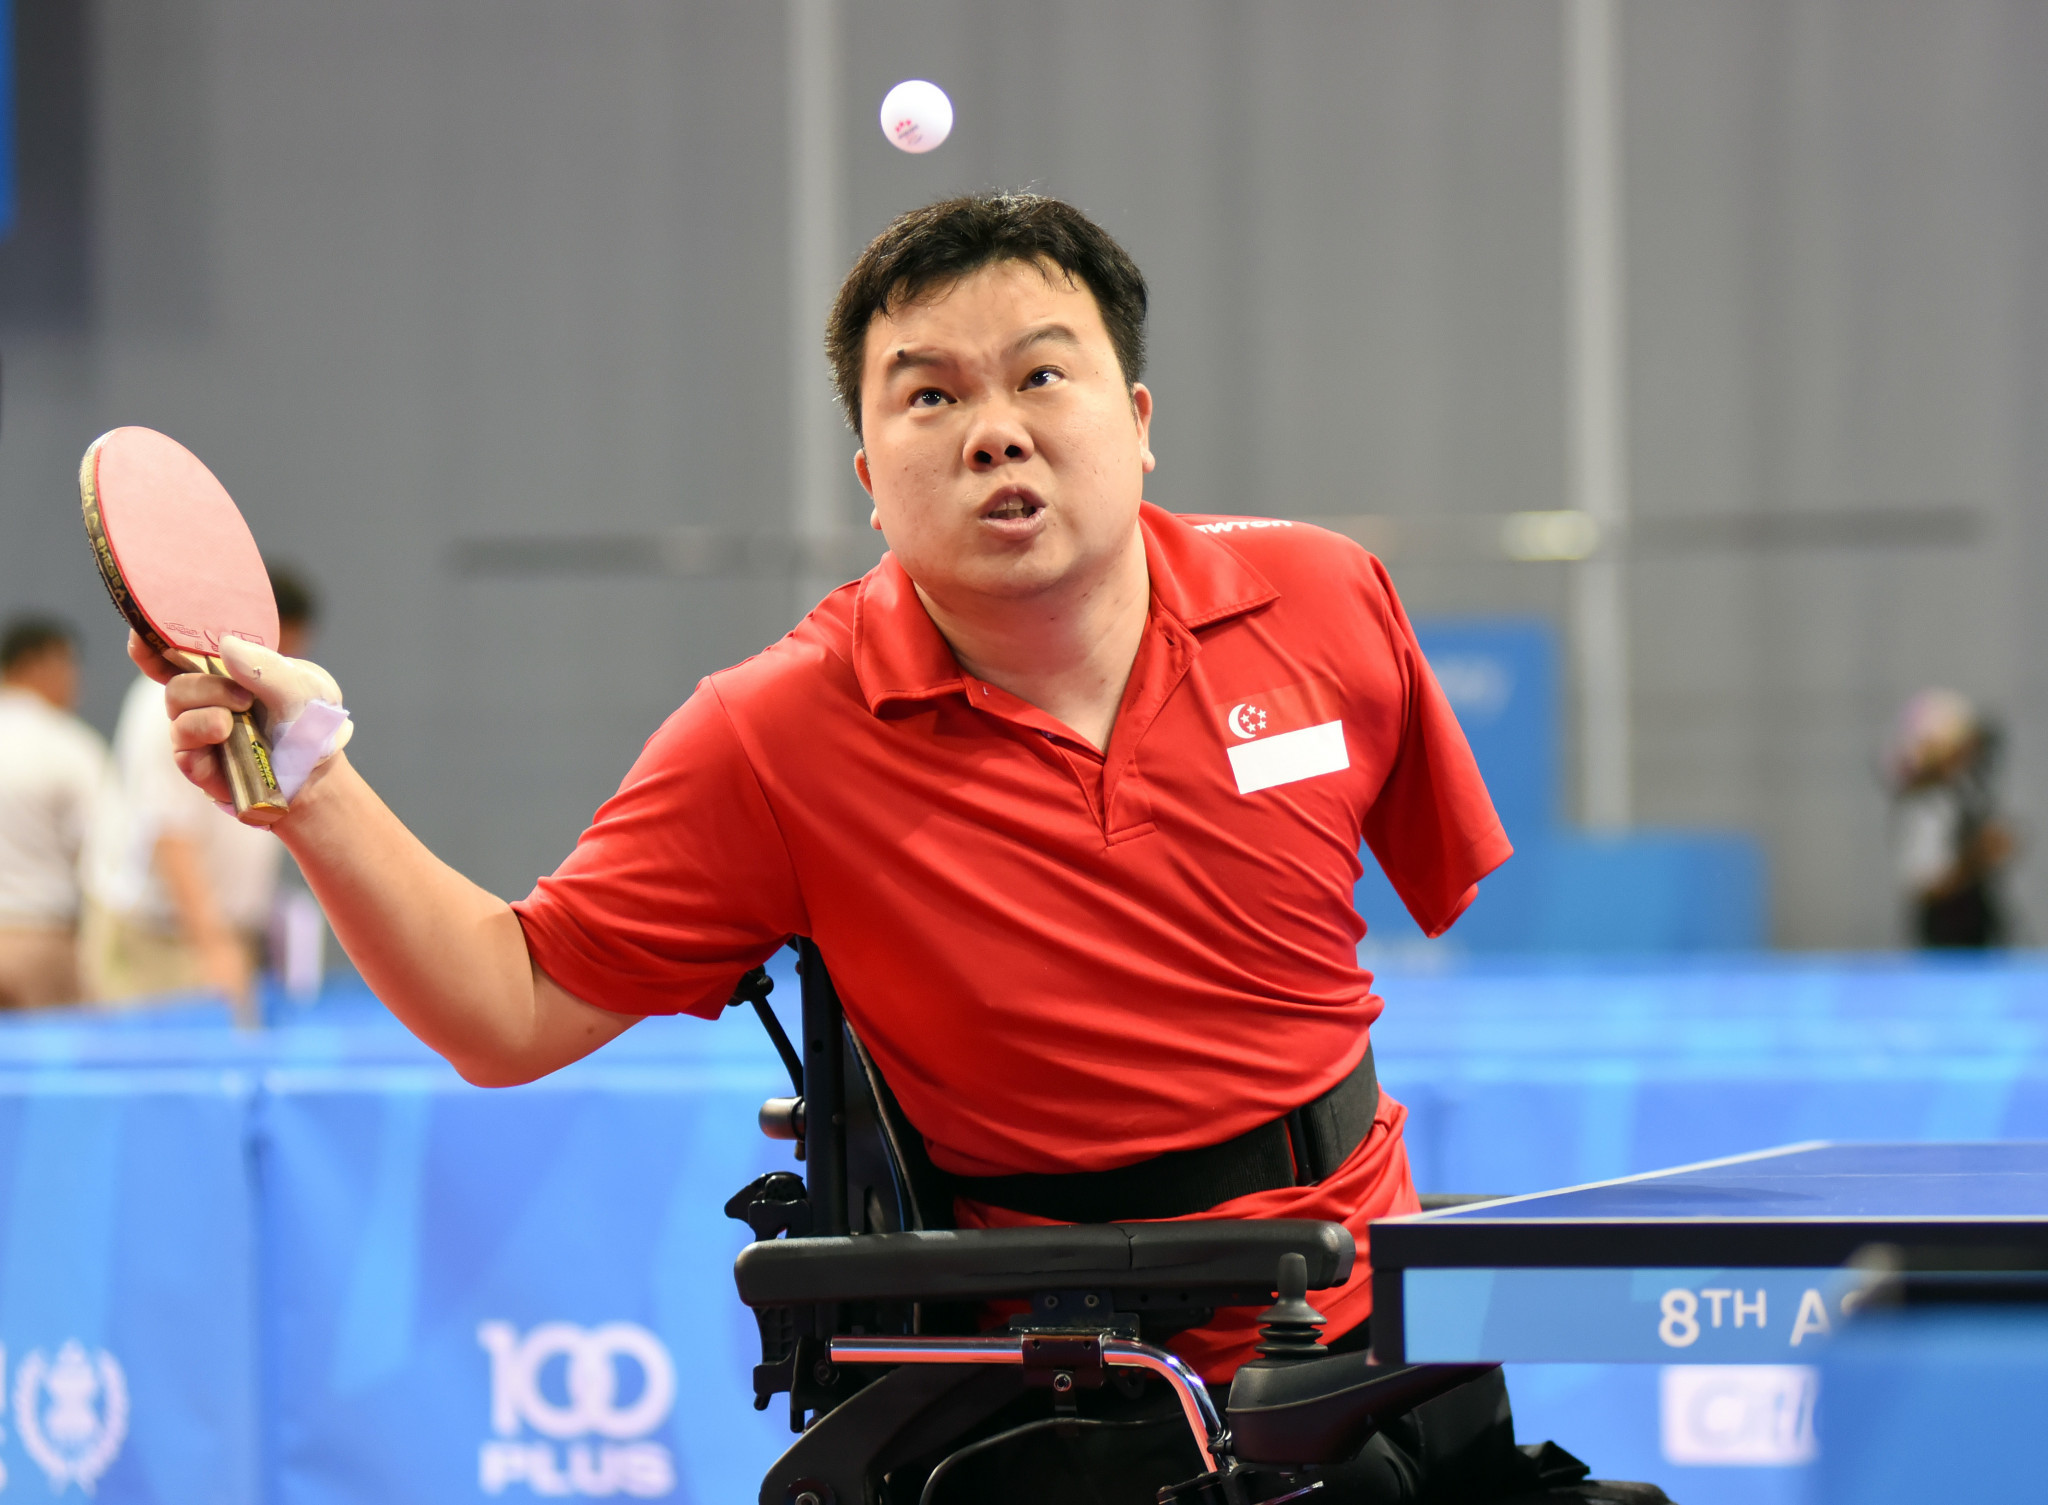 Table tennis is among the sports on the programme for the 2019 ASEAN Para Games in the Philippines ©Getty Images